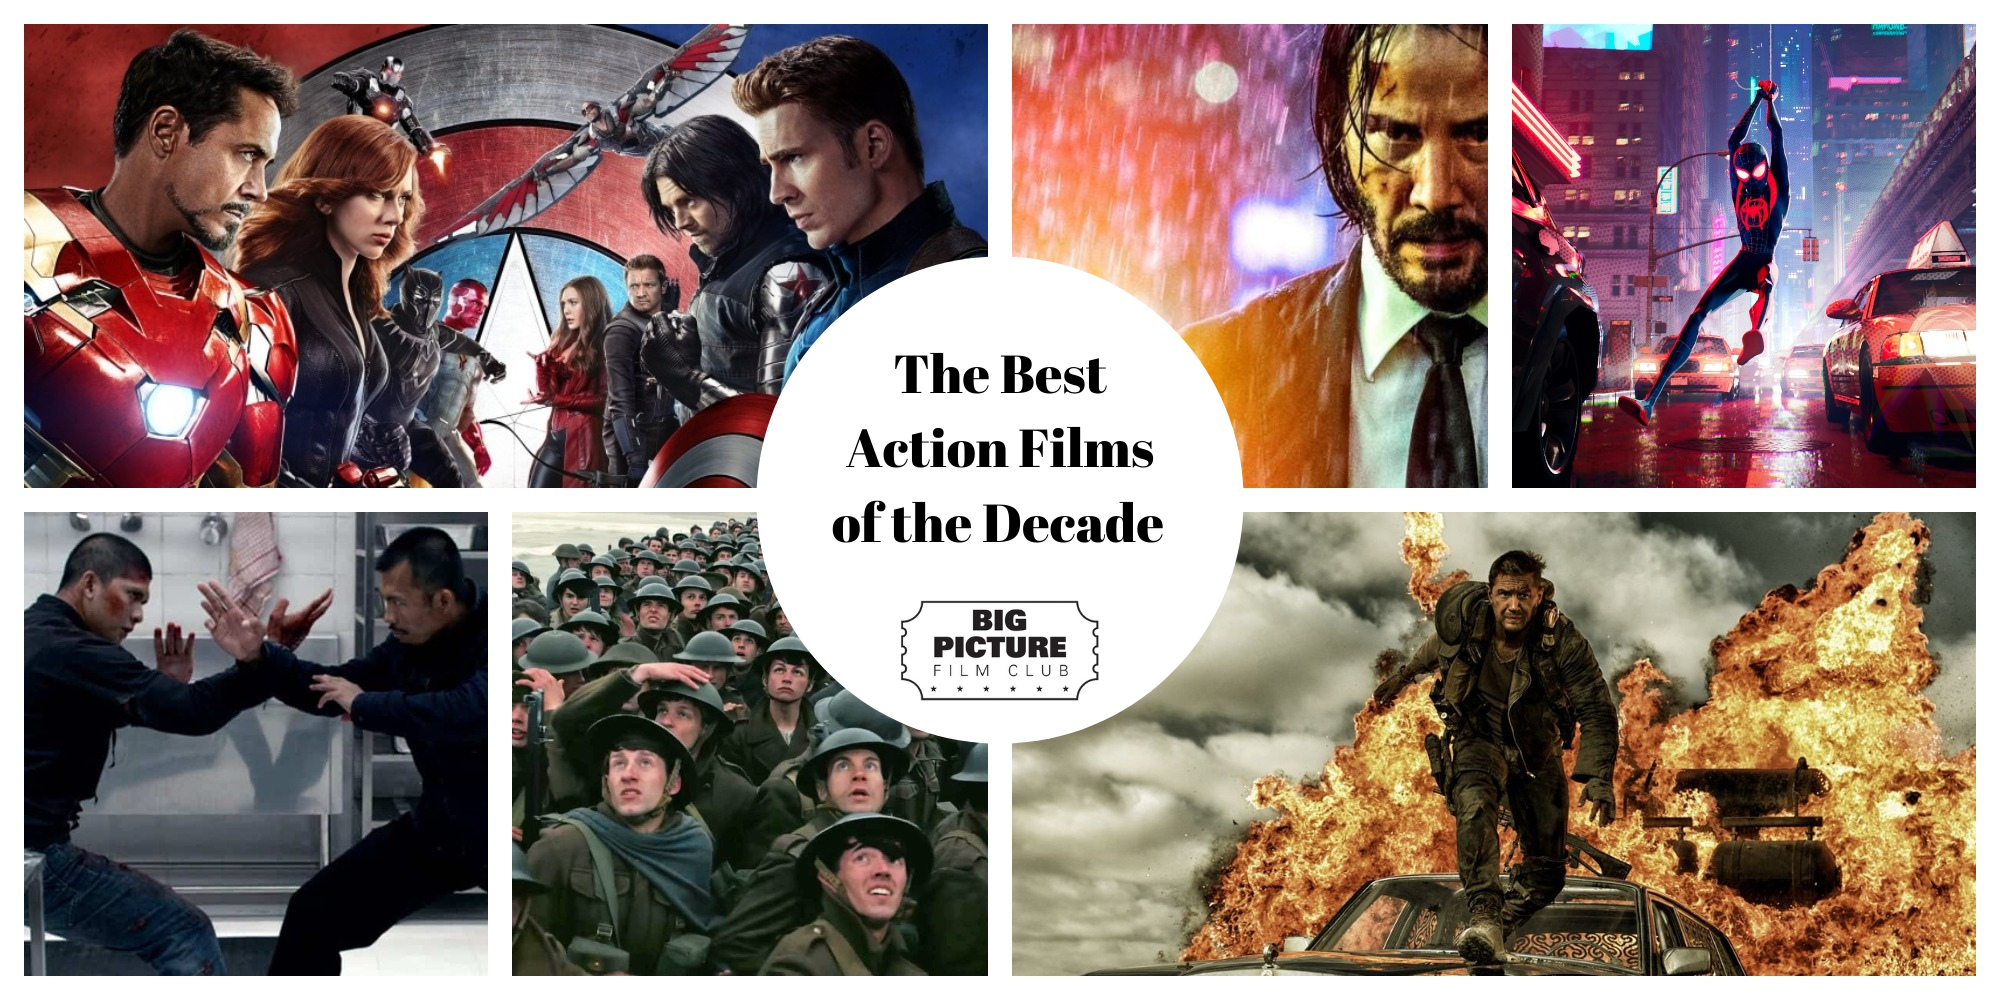 The Best Action Films of the Decade